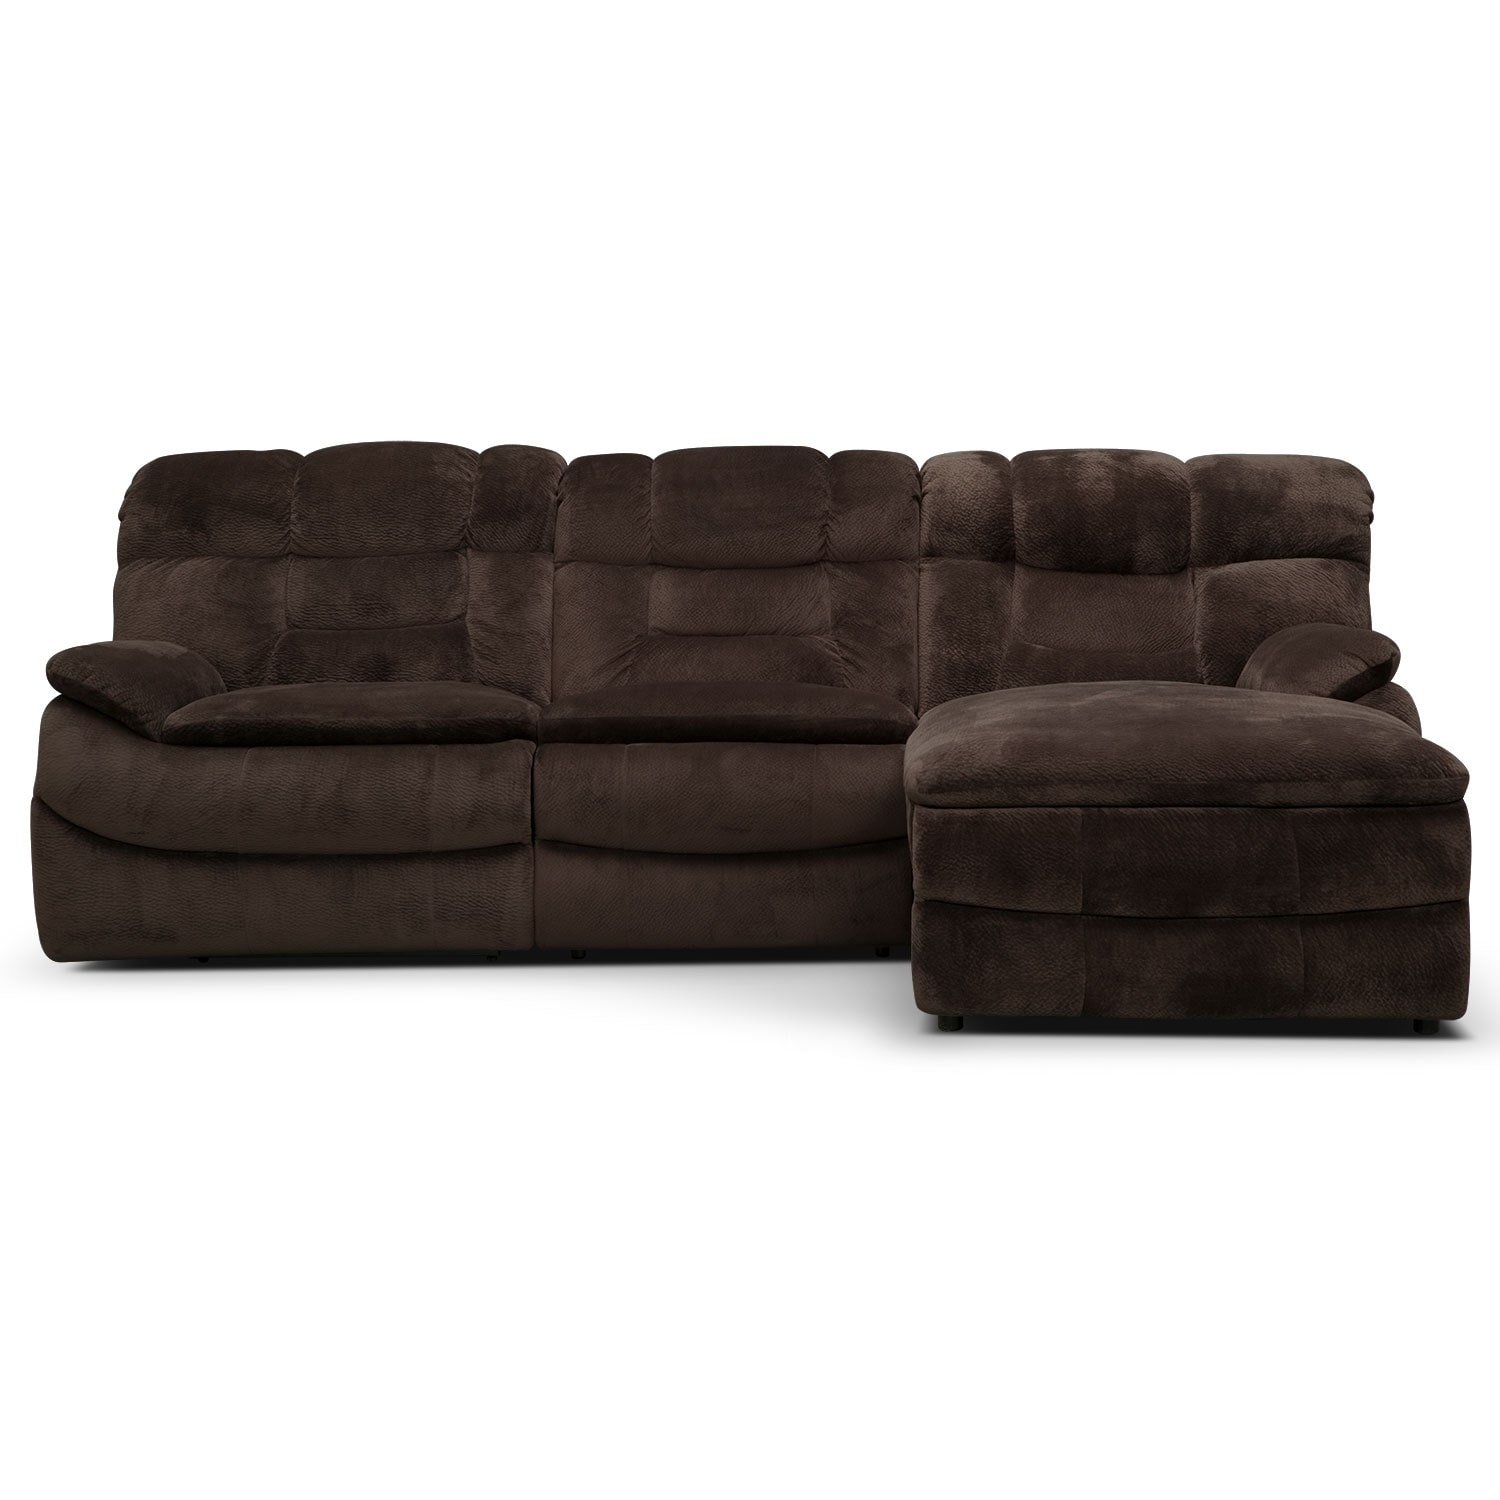 3 pc sectional sofa with recliners designs for rooms big softie piece power reclining right